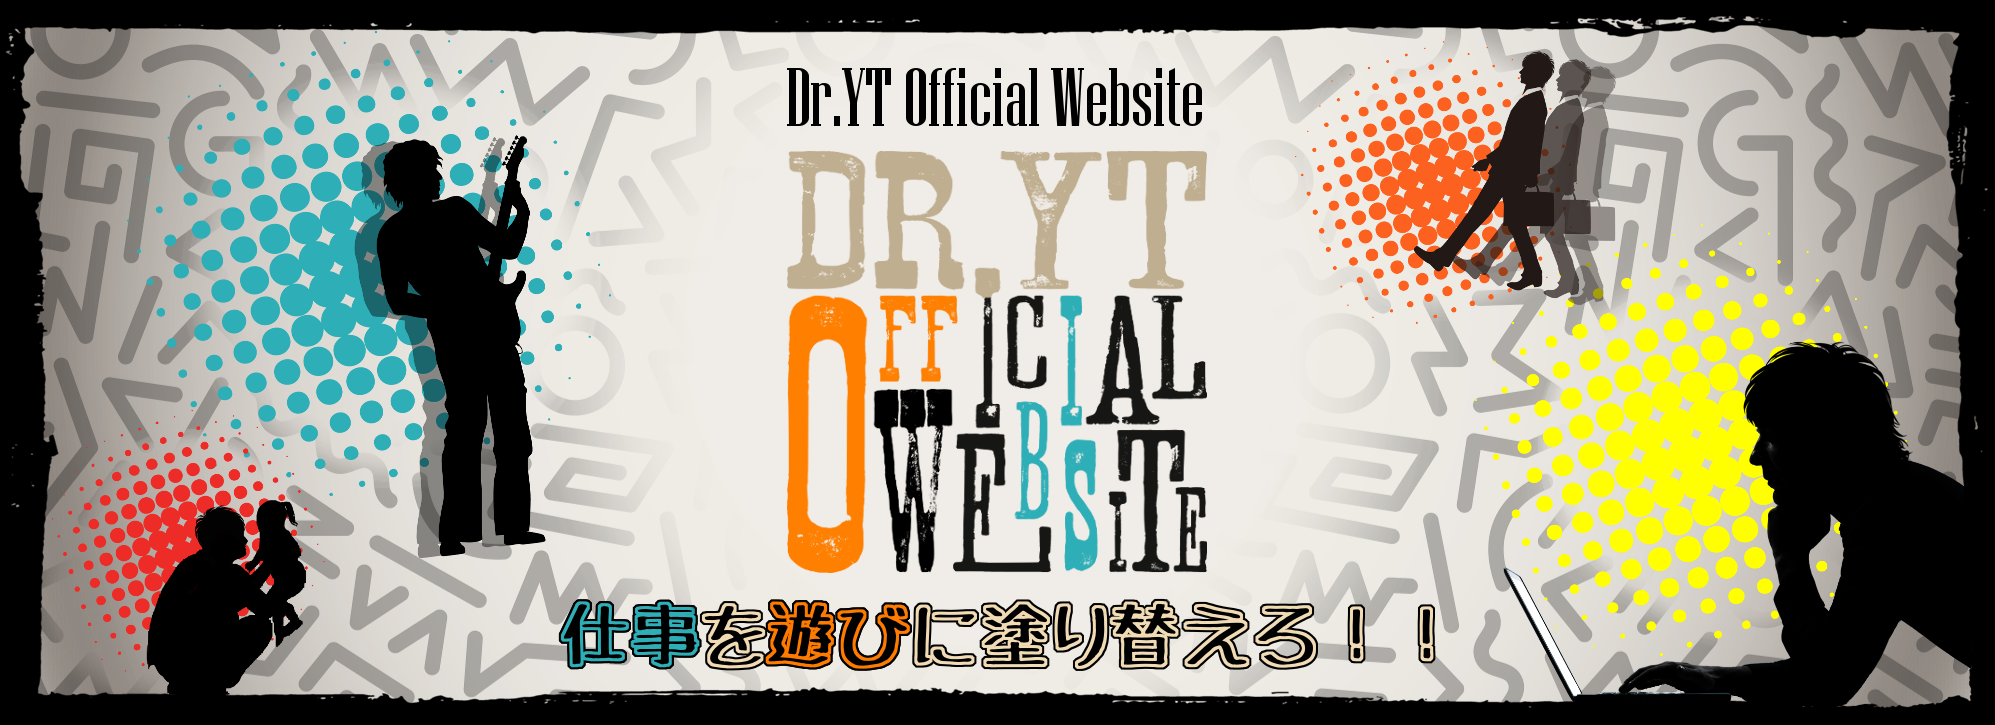 Dr.YT Official Web Site